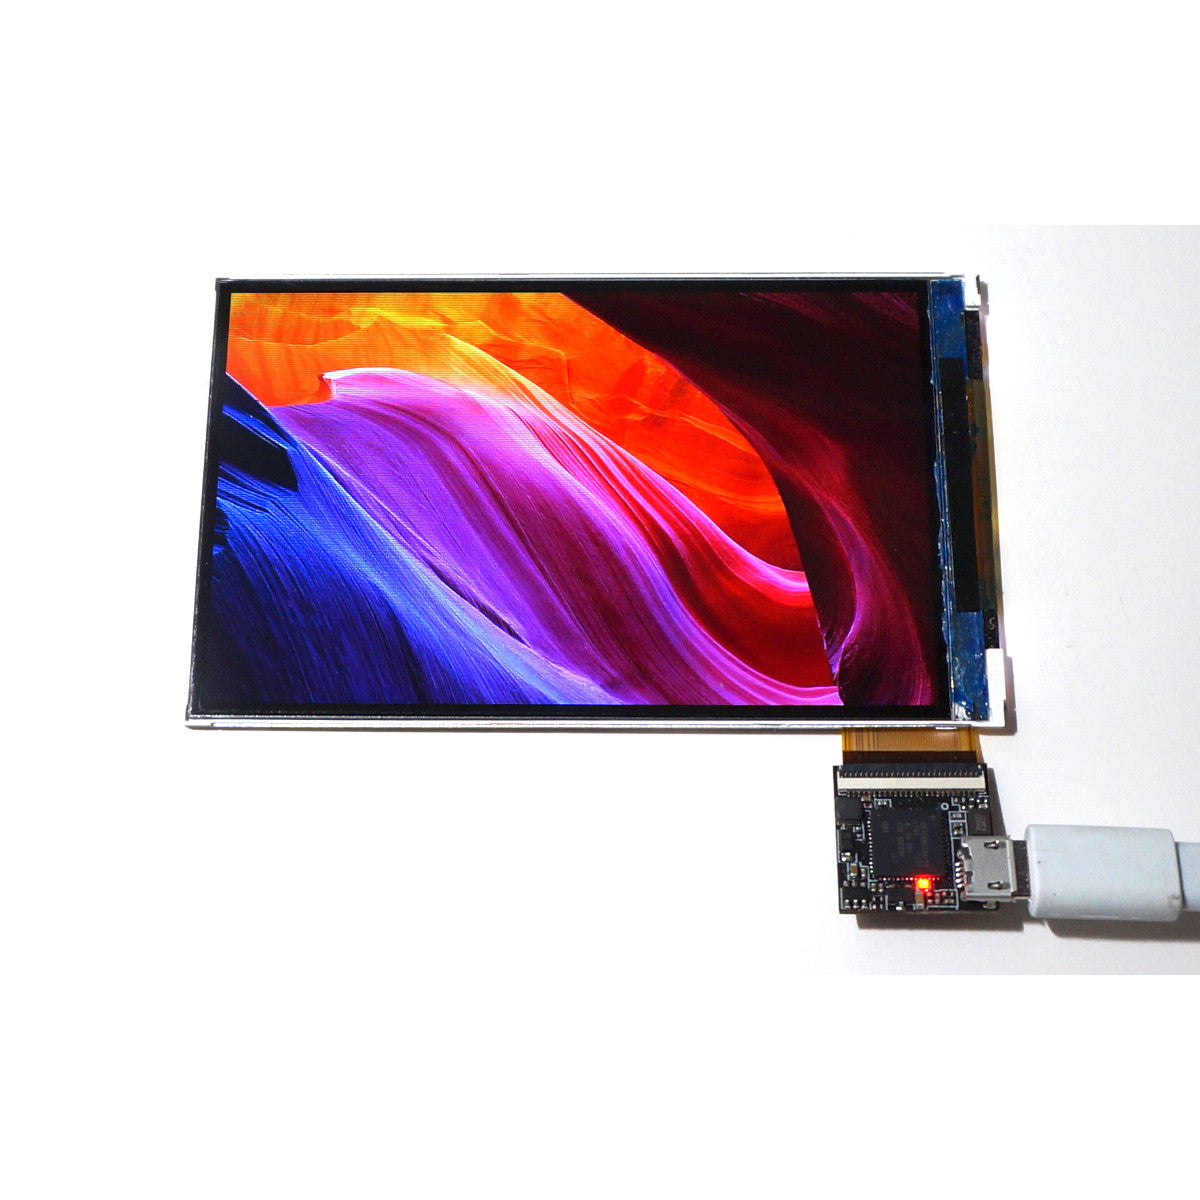 How-To: 4.1 inch 800x480 USB2 Display - Capturing and displaying desktop